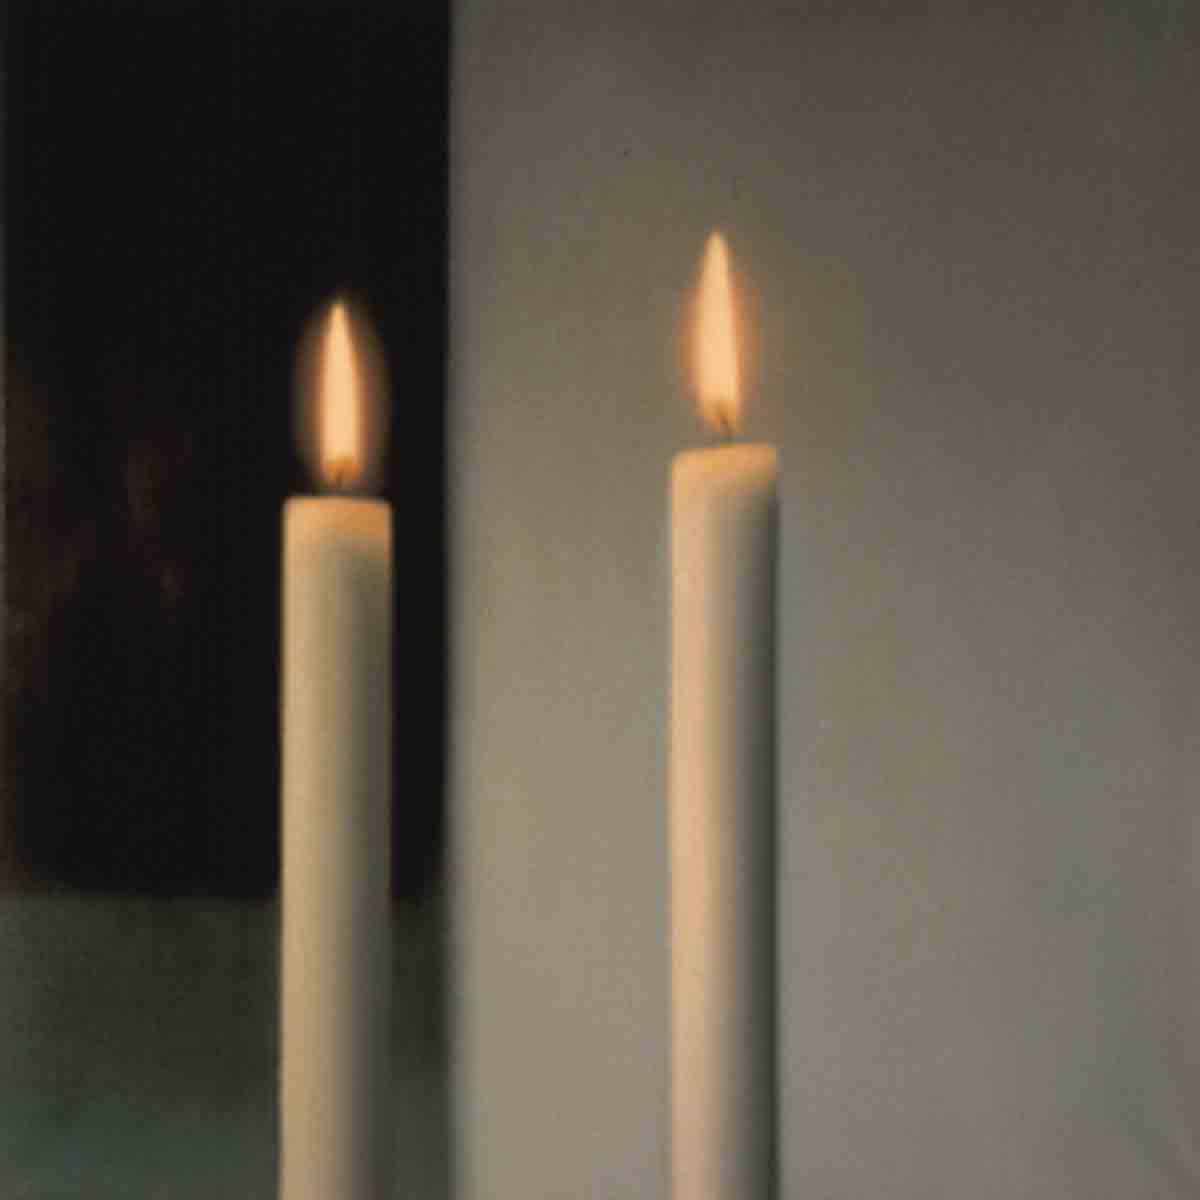 Richter Candle Gerard Richter Two Candles